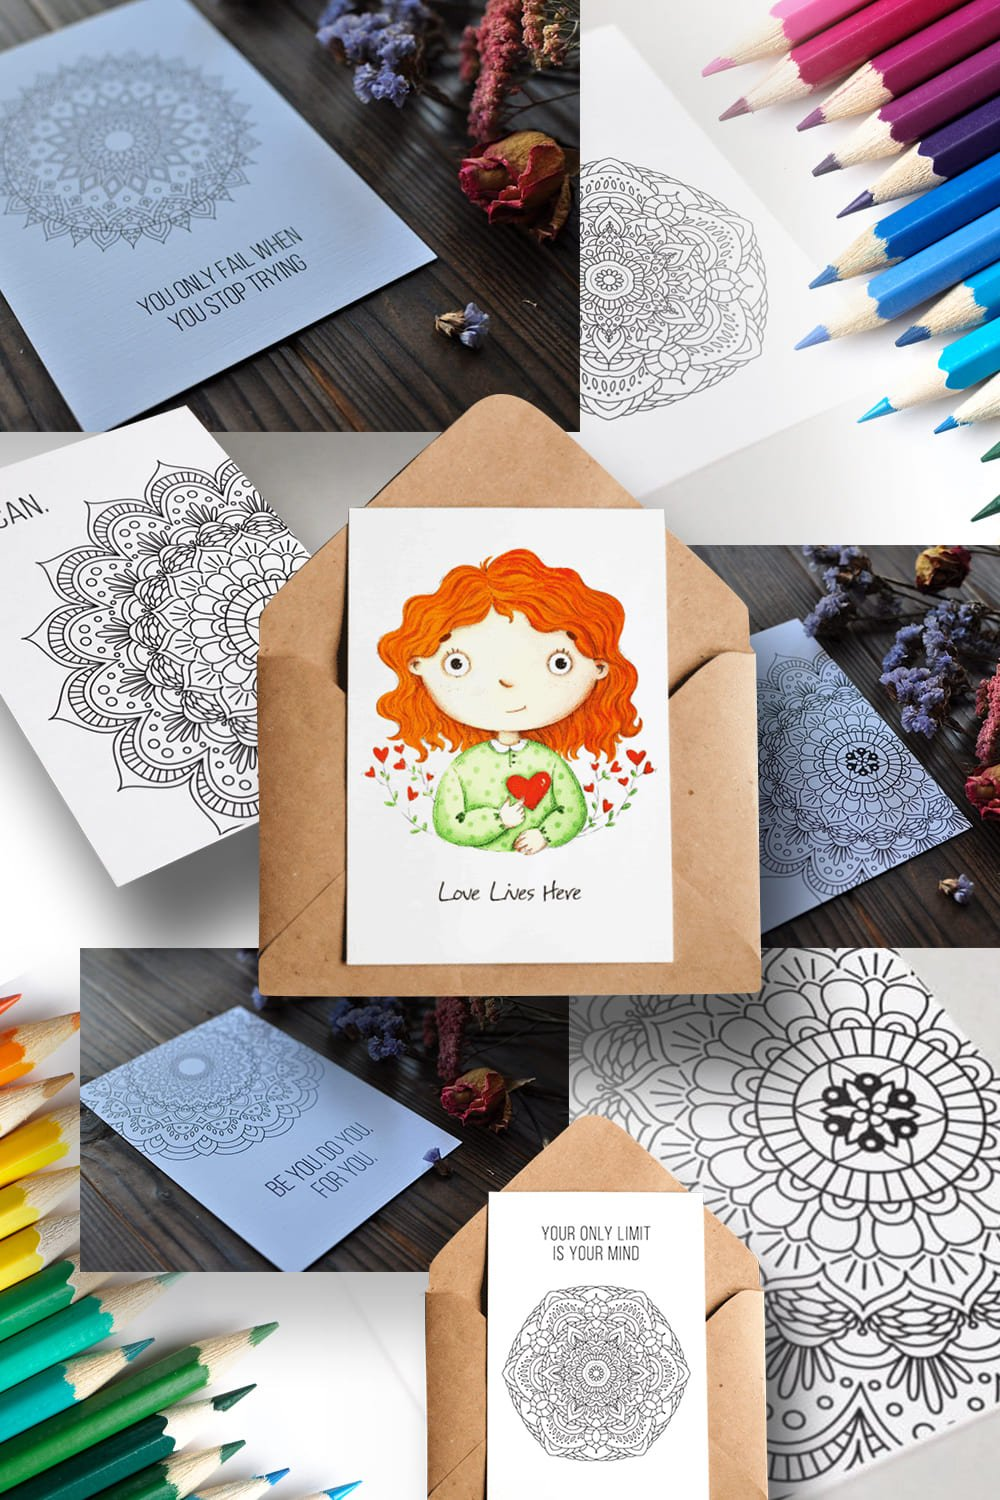 Best Coloring Cards For Adults. Pinterest Image.